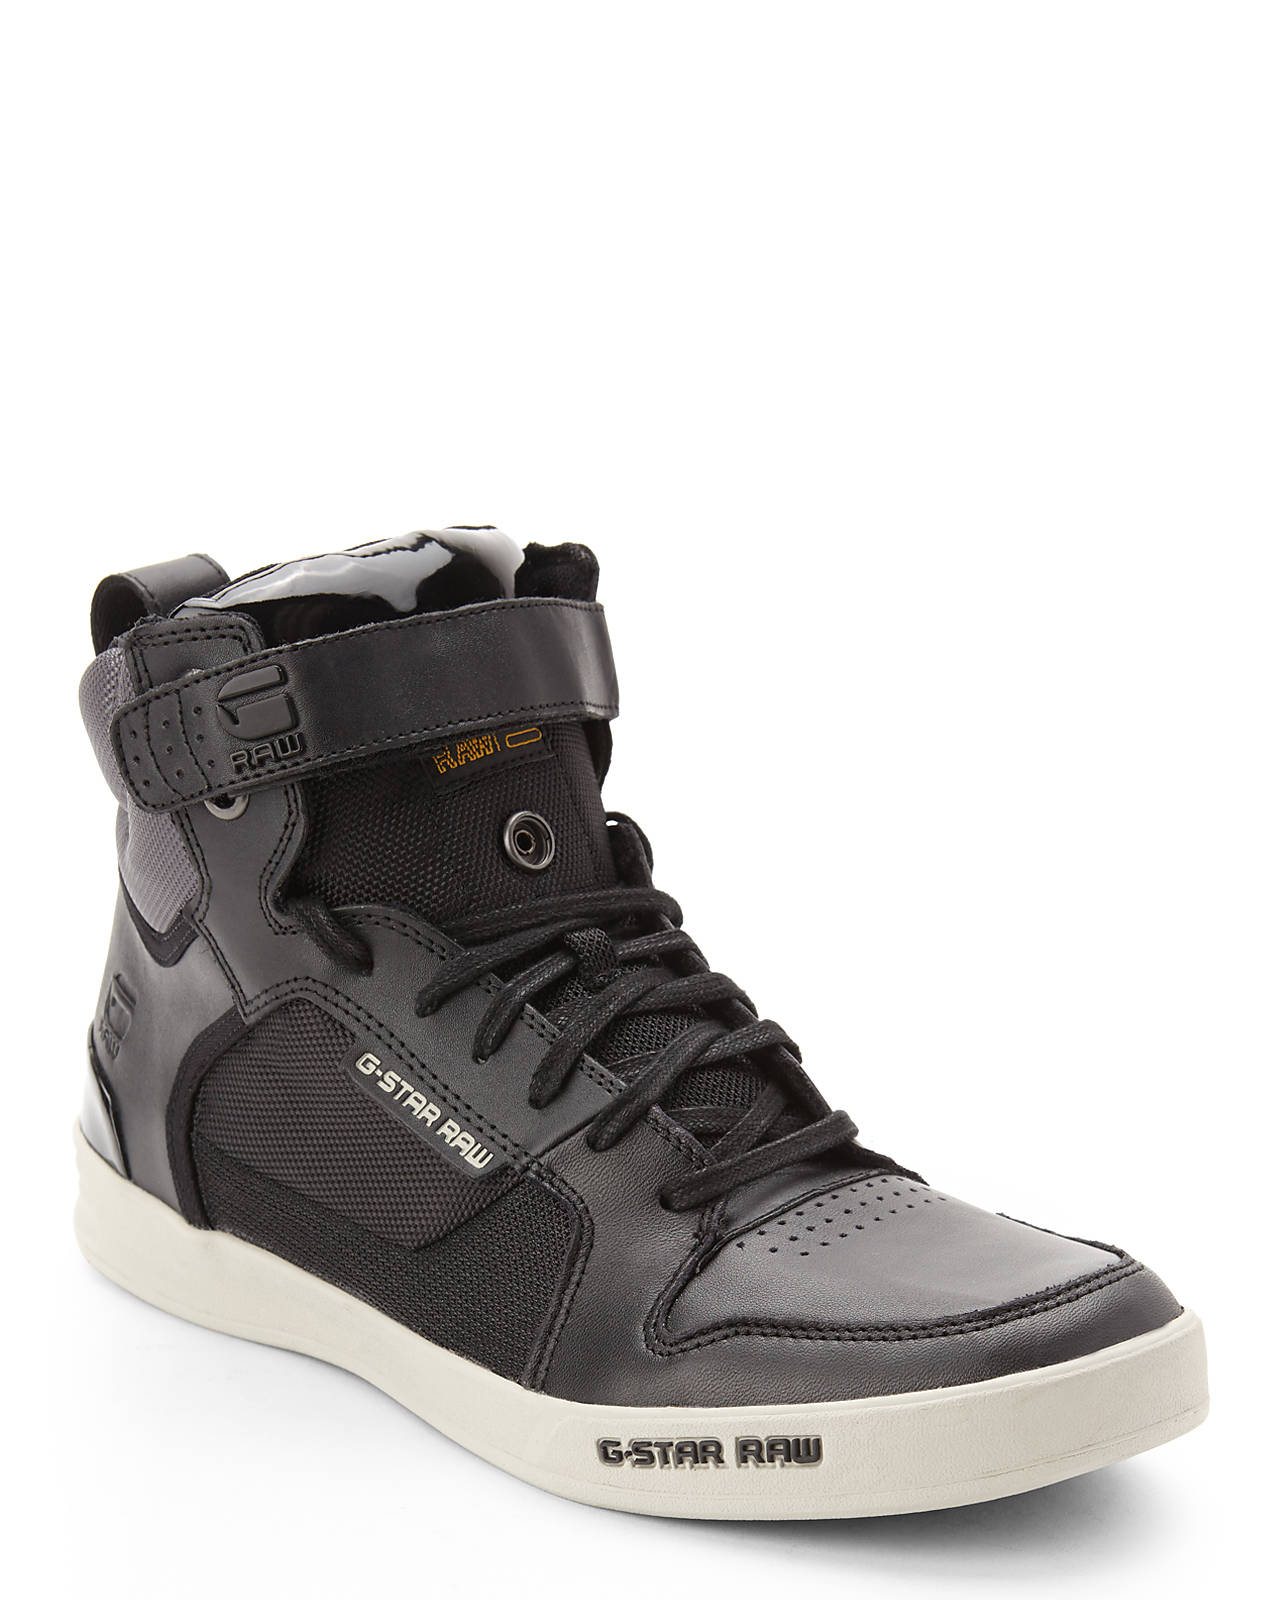 lyst g star raw black grey yard bullion high top sneakers in black for men. Black Bedroom Furniture Sets. Home Design Ideas